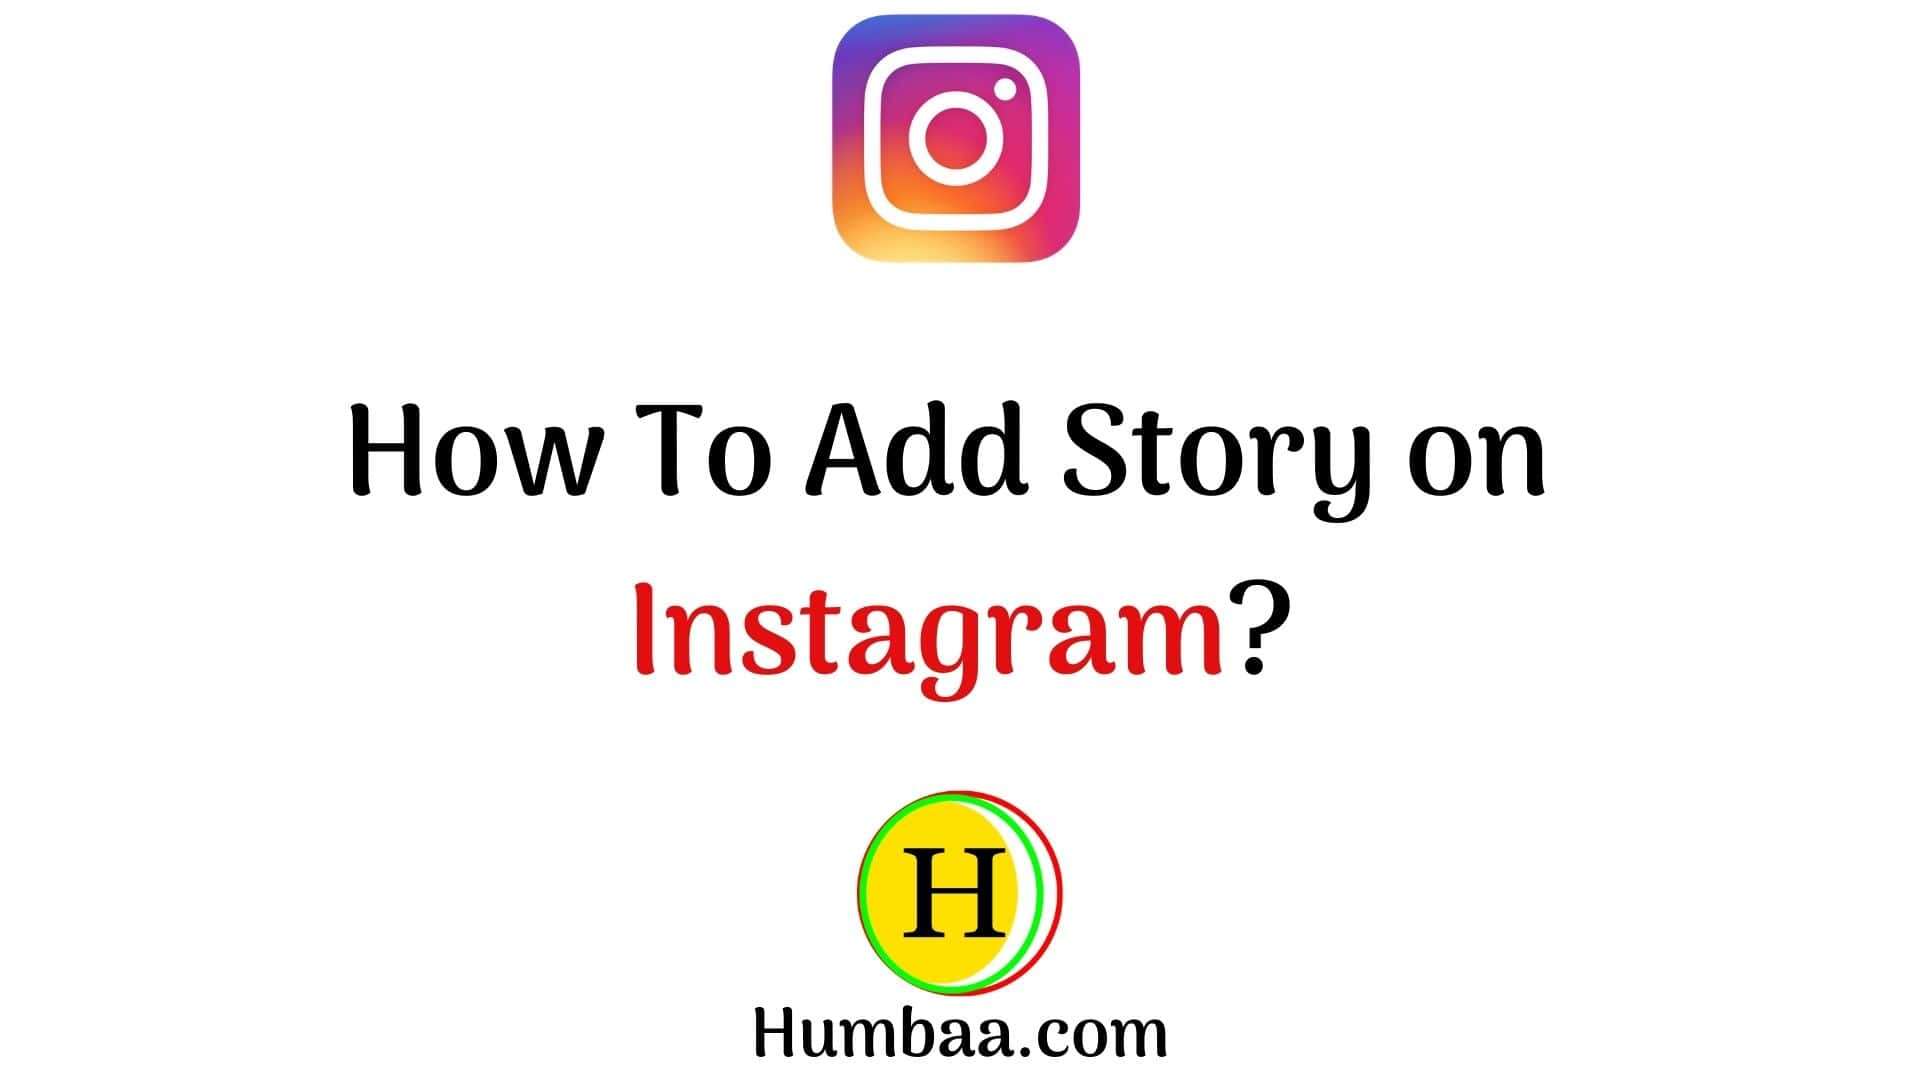 How To Add Story on Instagram